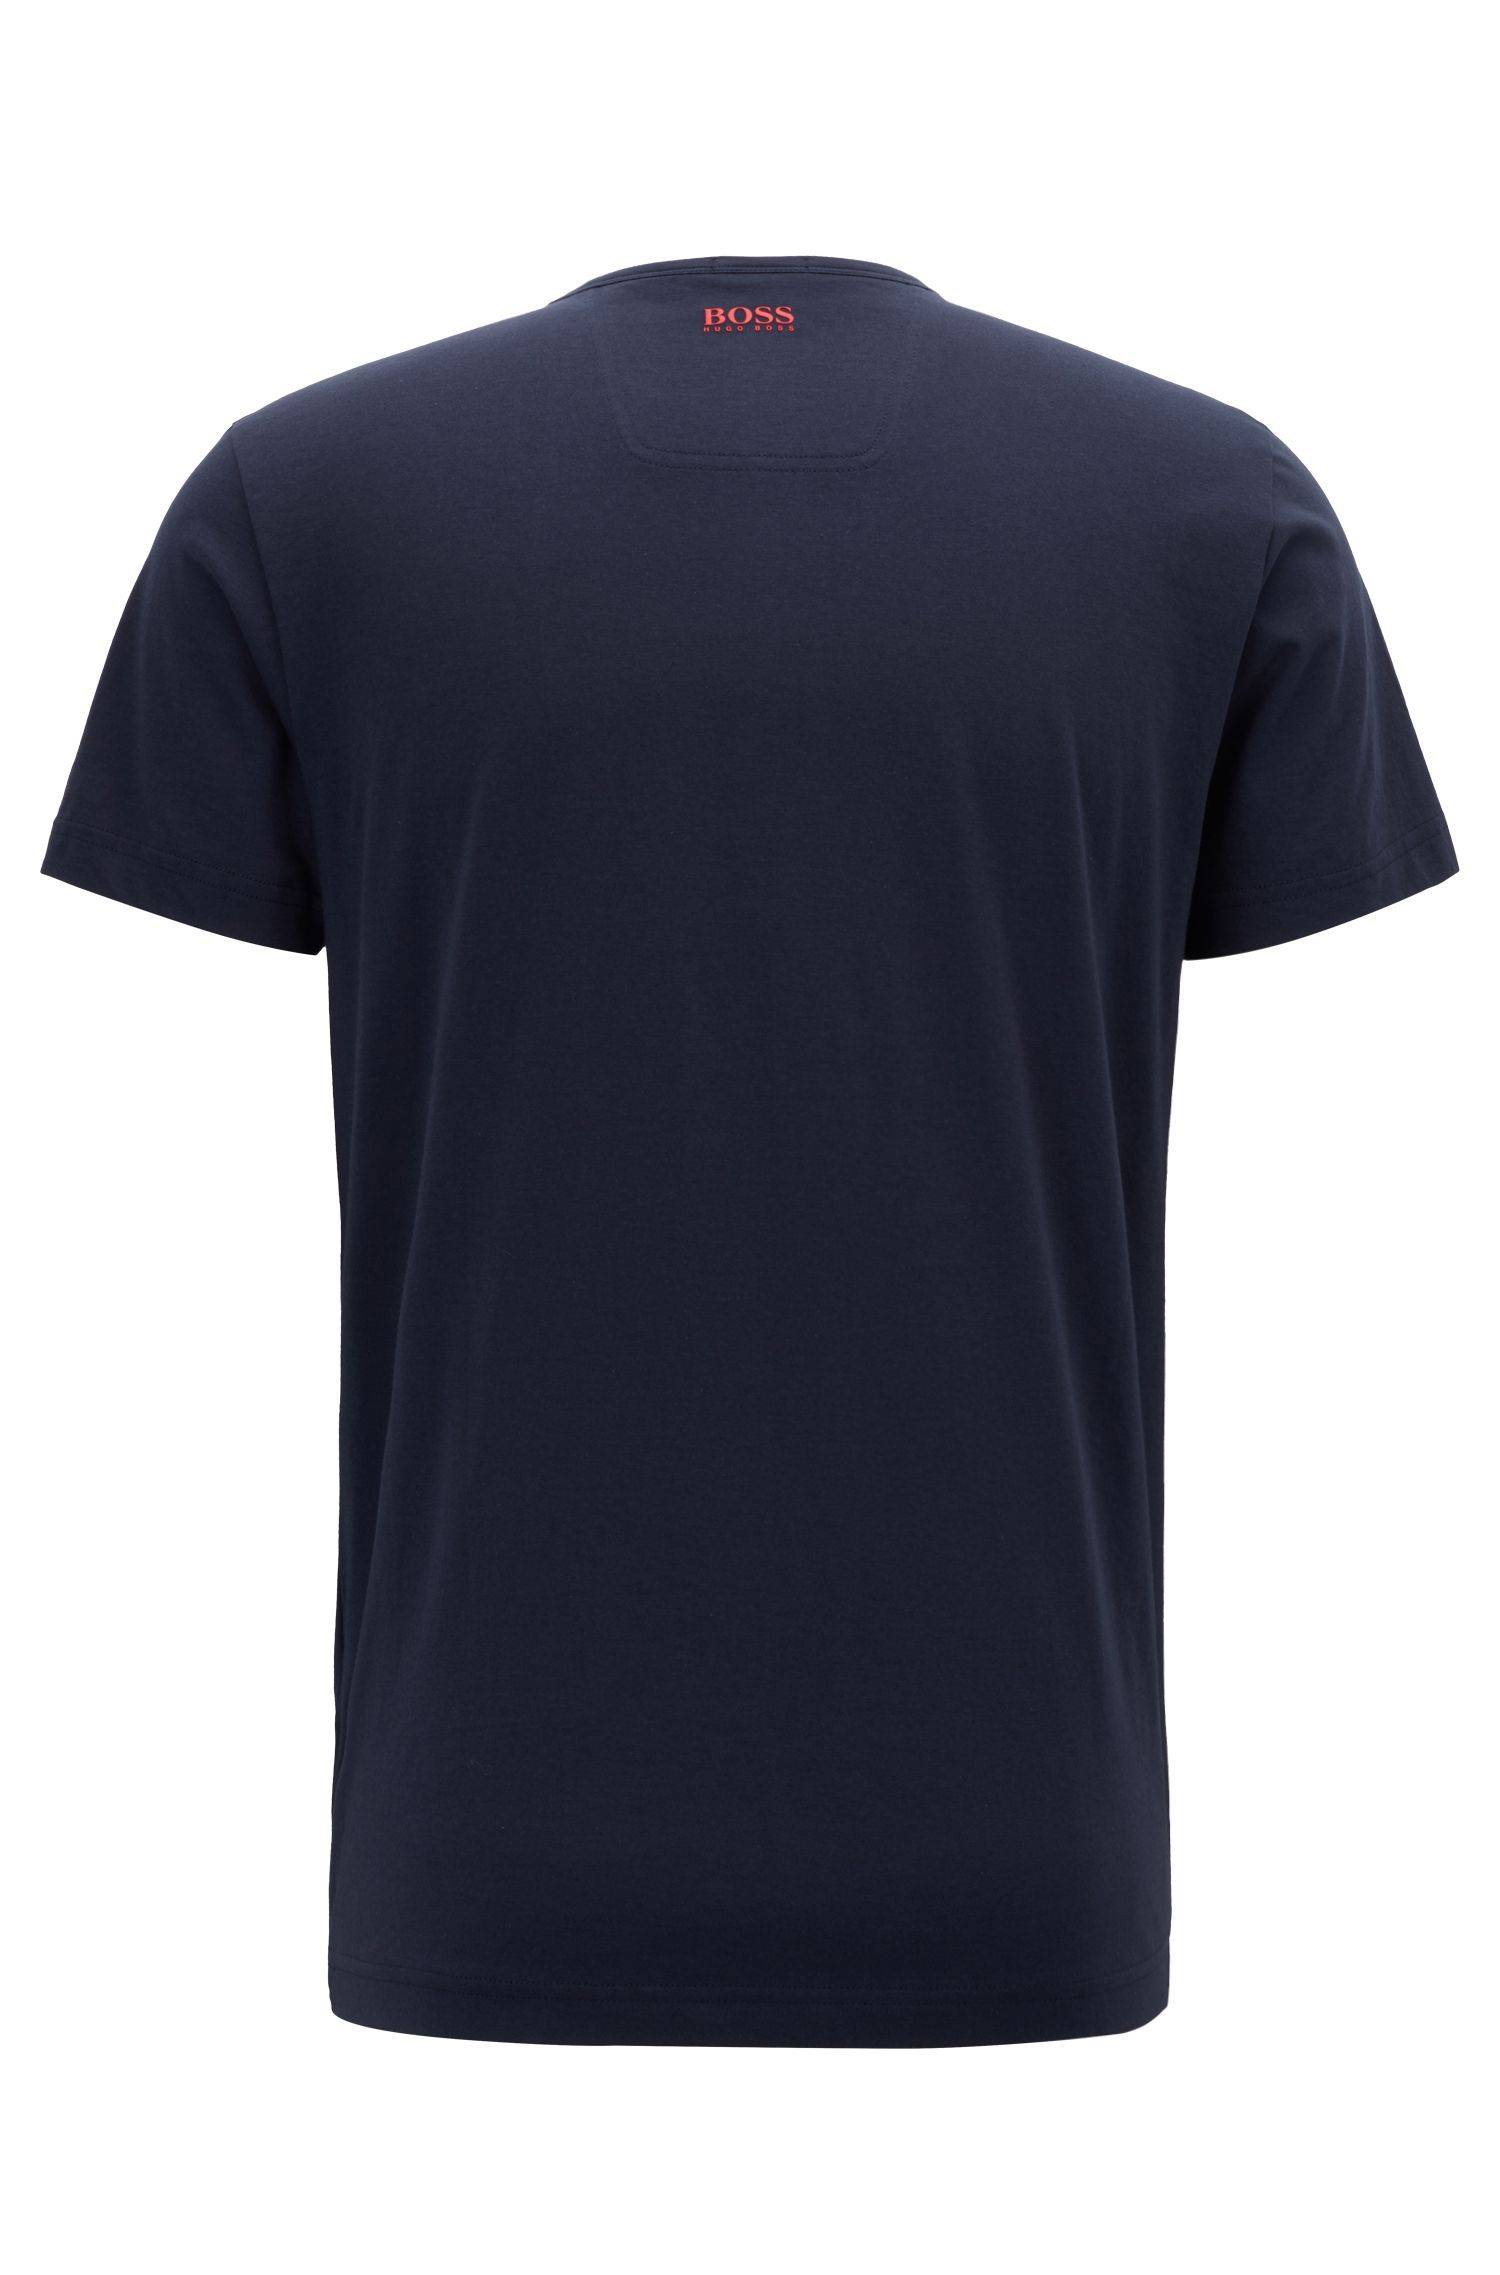 Cotton-jersey T-shirt with rubberized lenticular logo print, Dark Blue